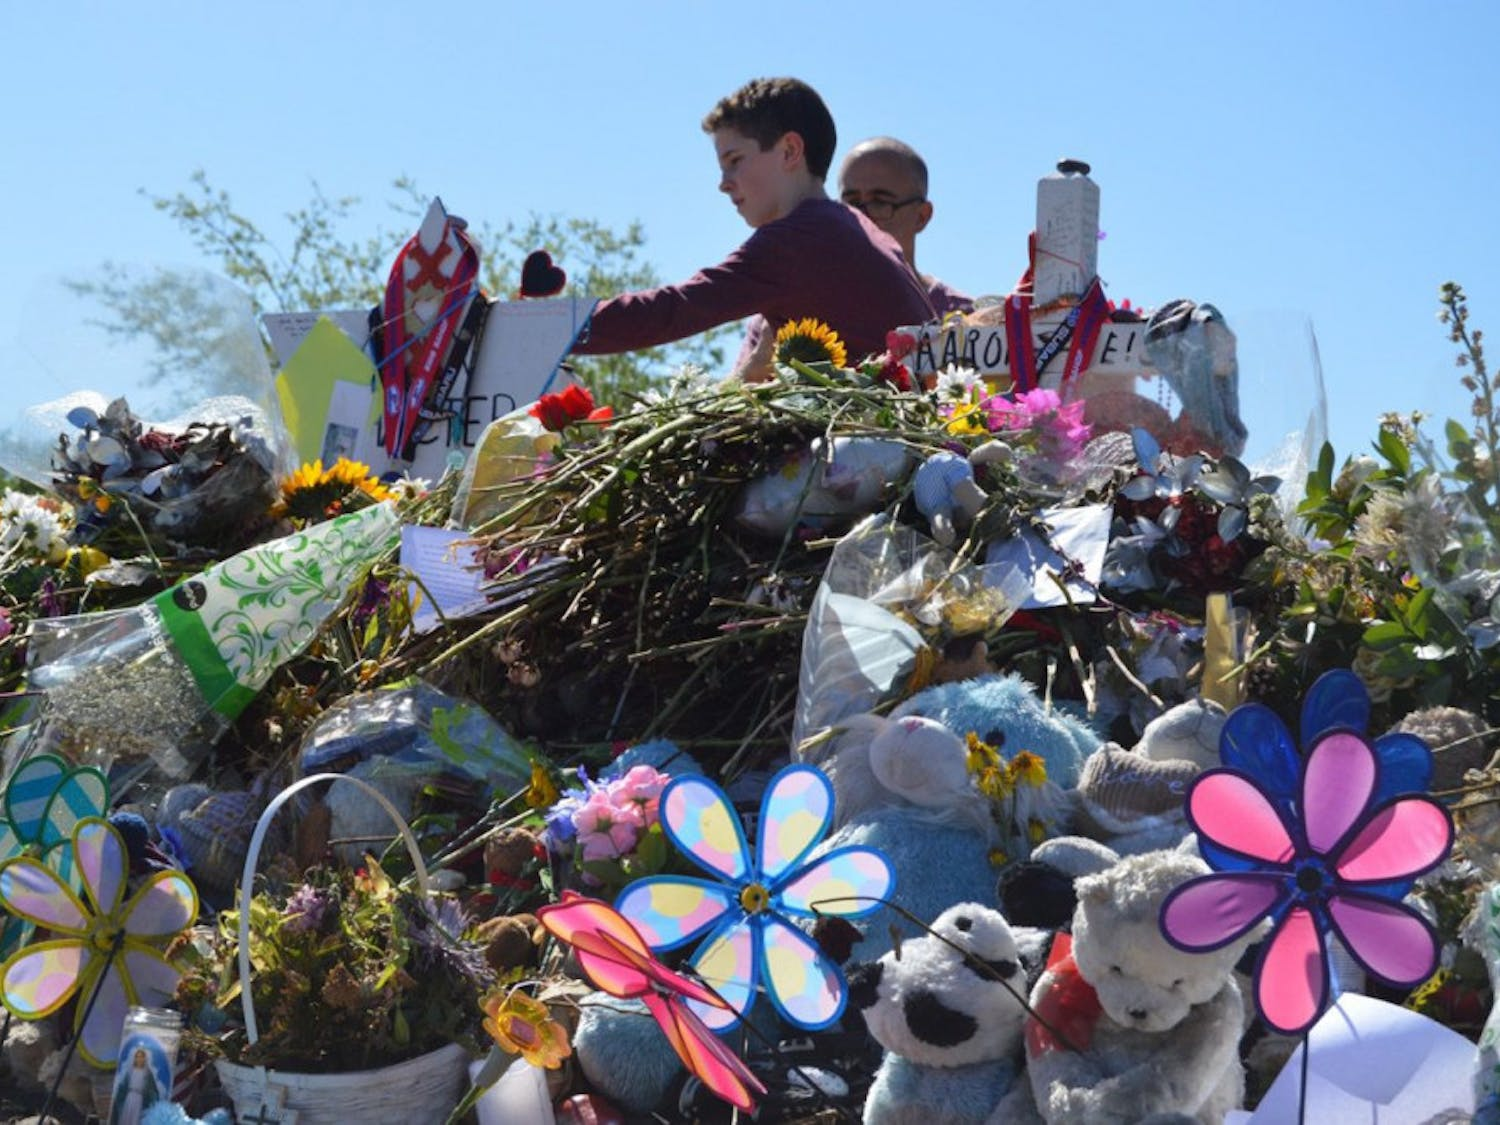 A young boy lays down a flower at the victim's memorials outside Marjory Stoneman Douglas High School on March 3.